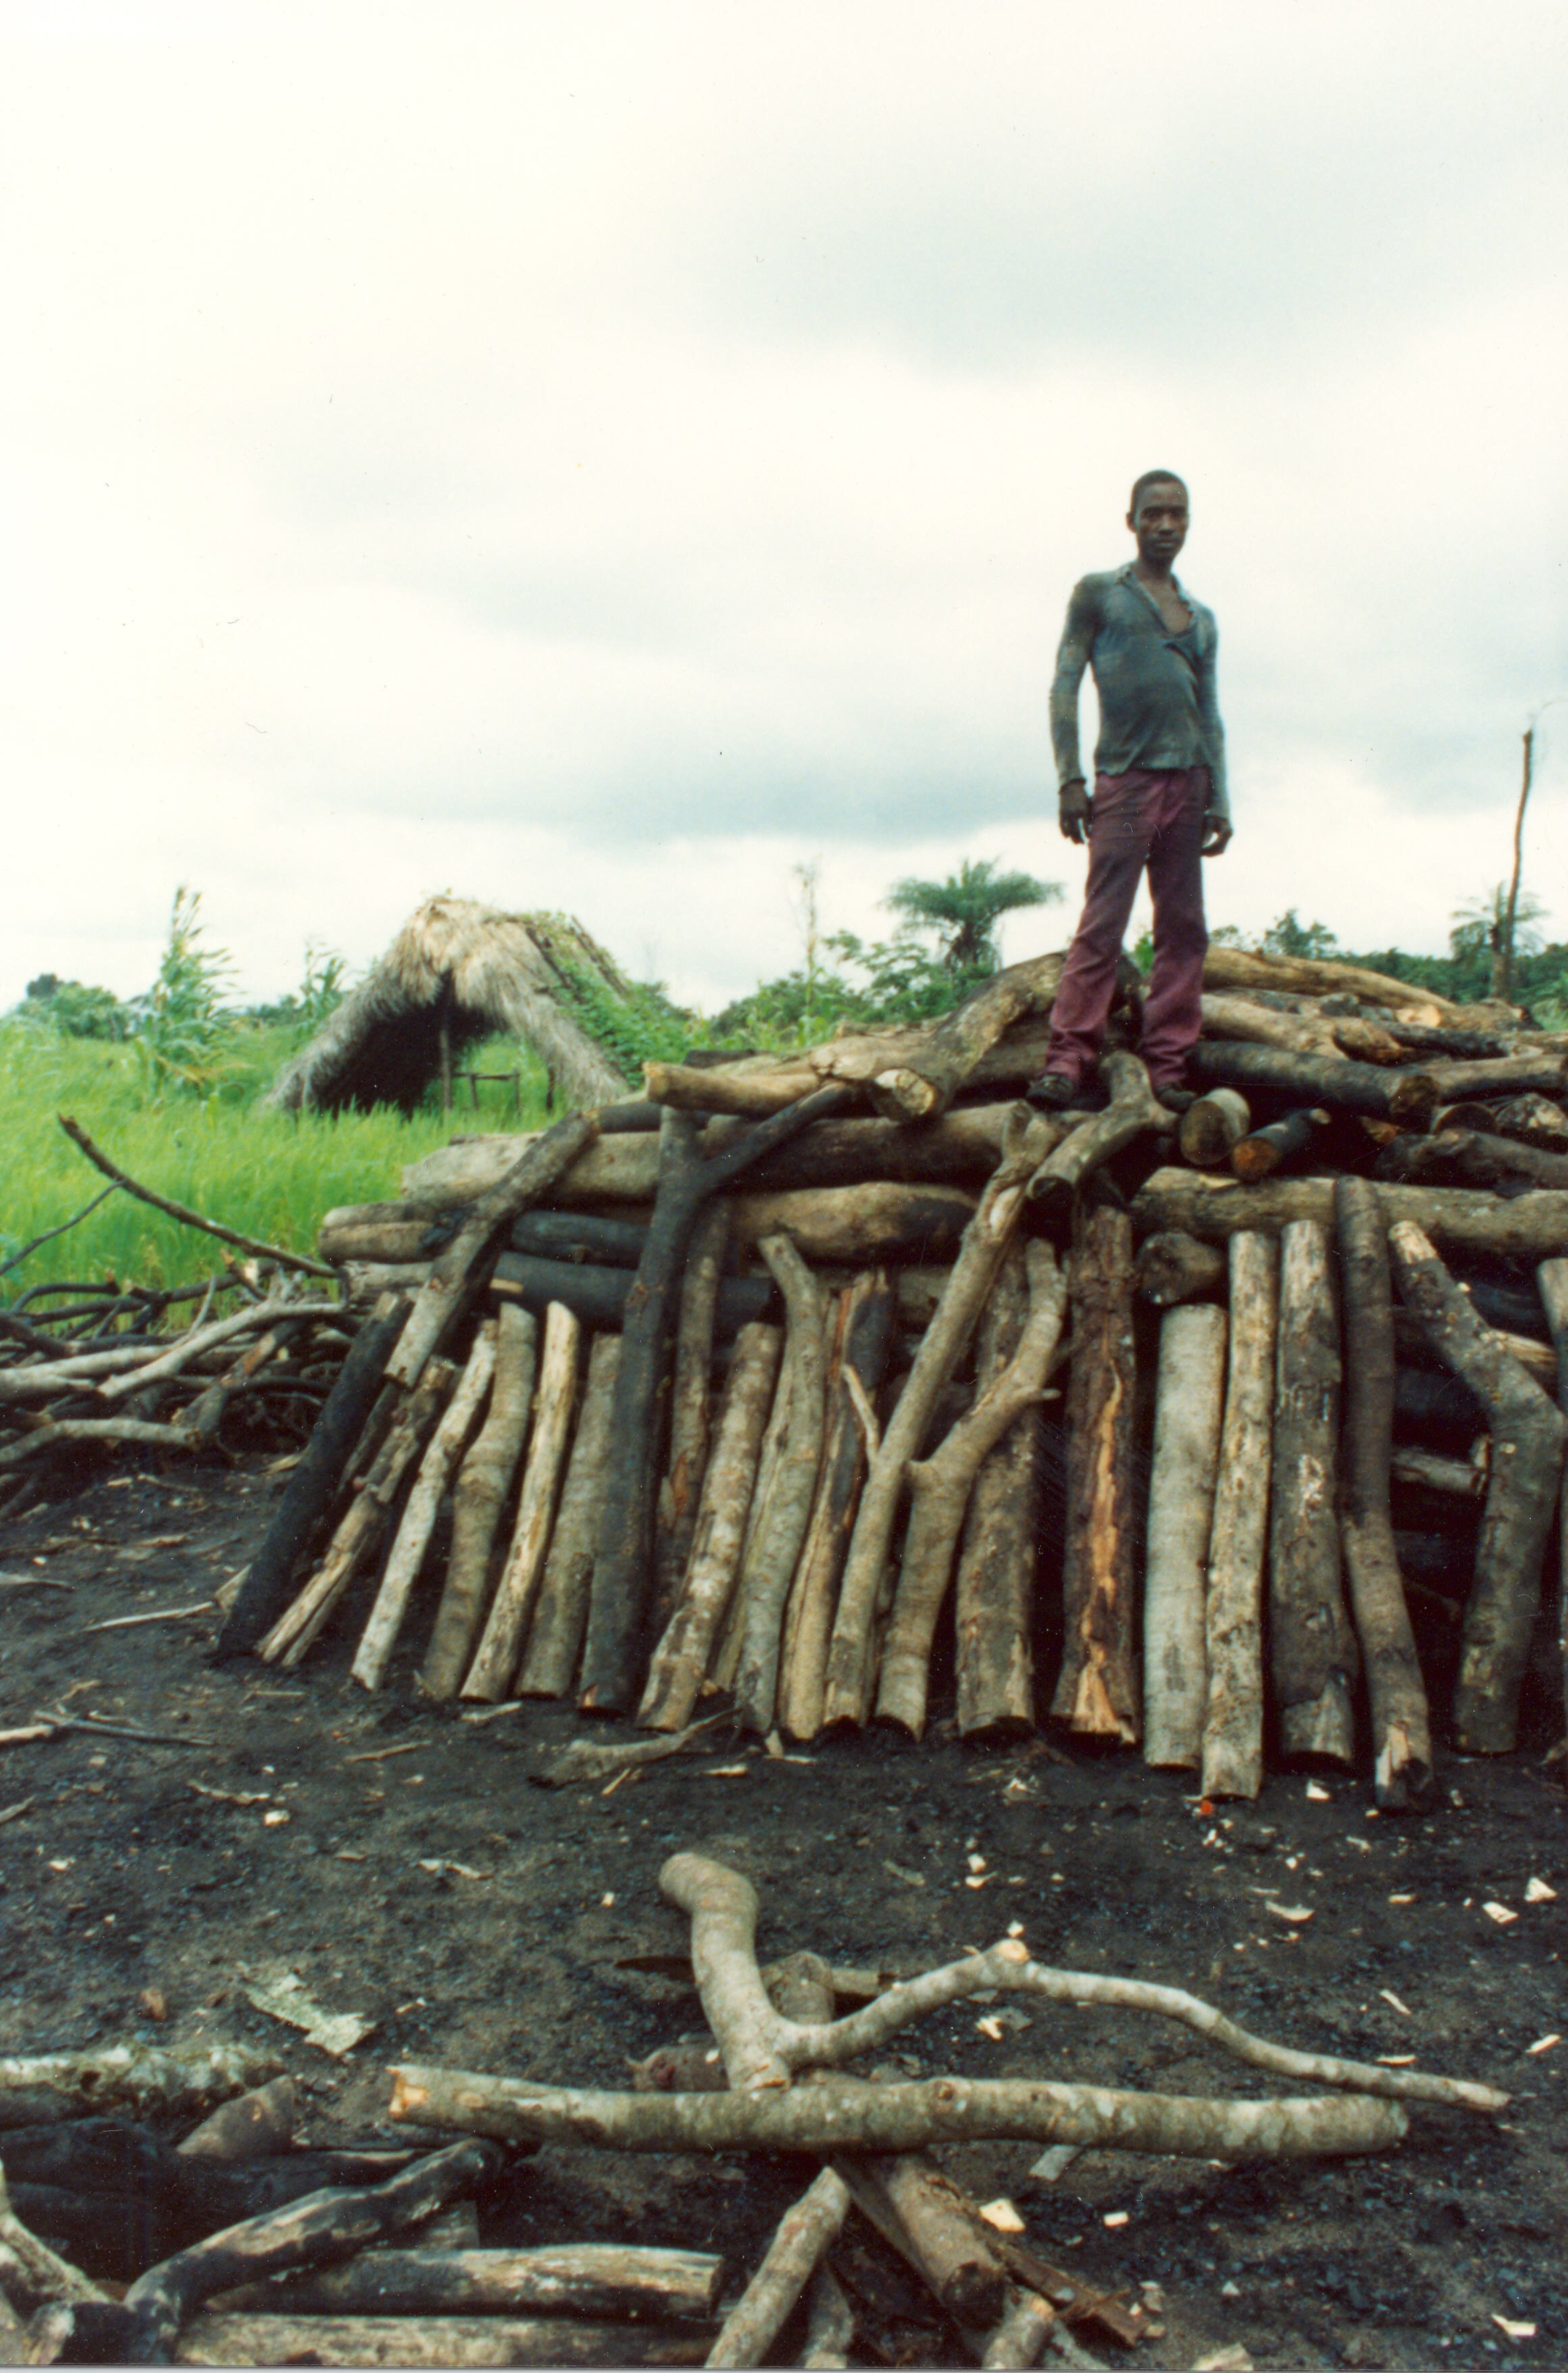 Charcoal making in Liberia